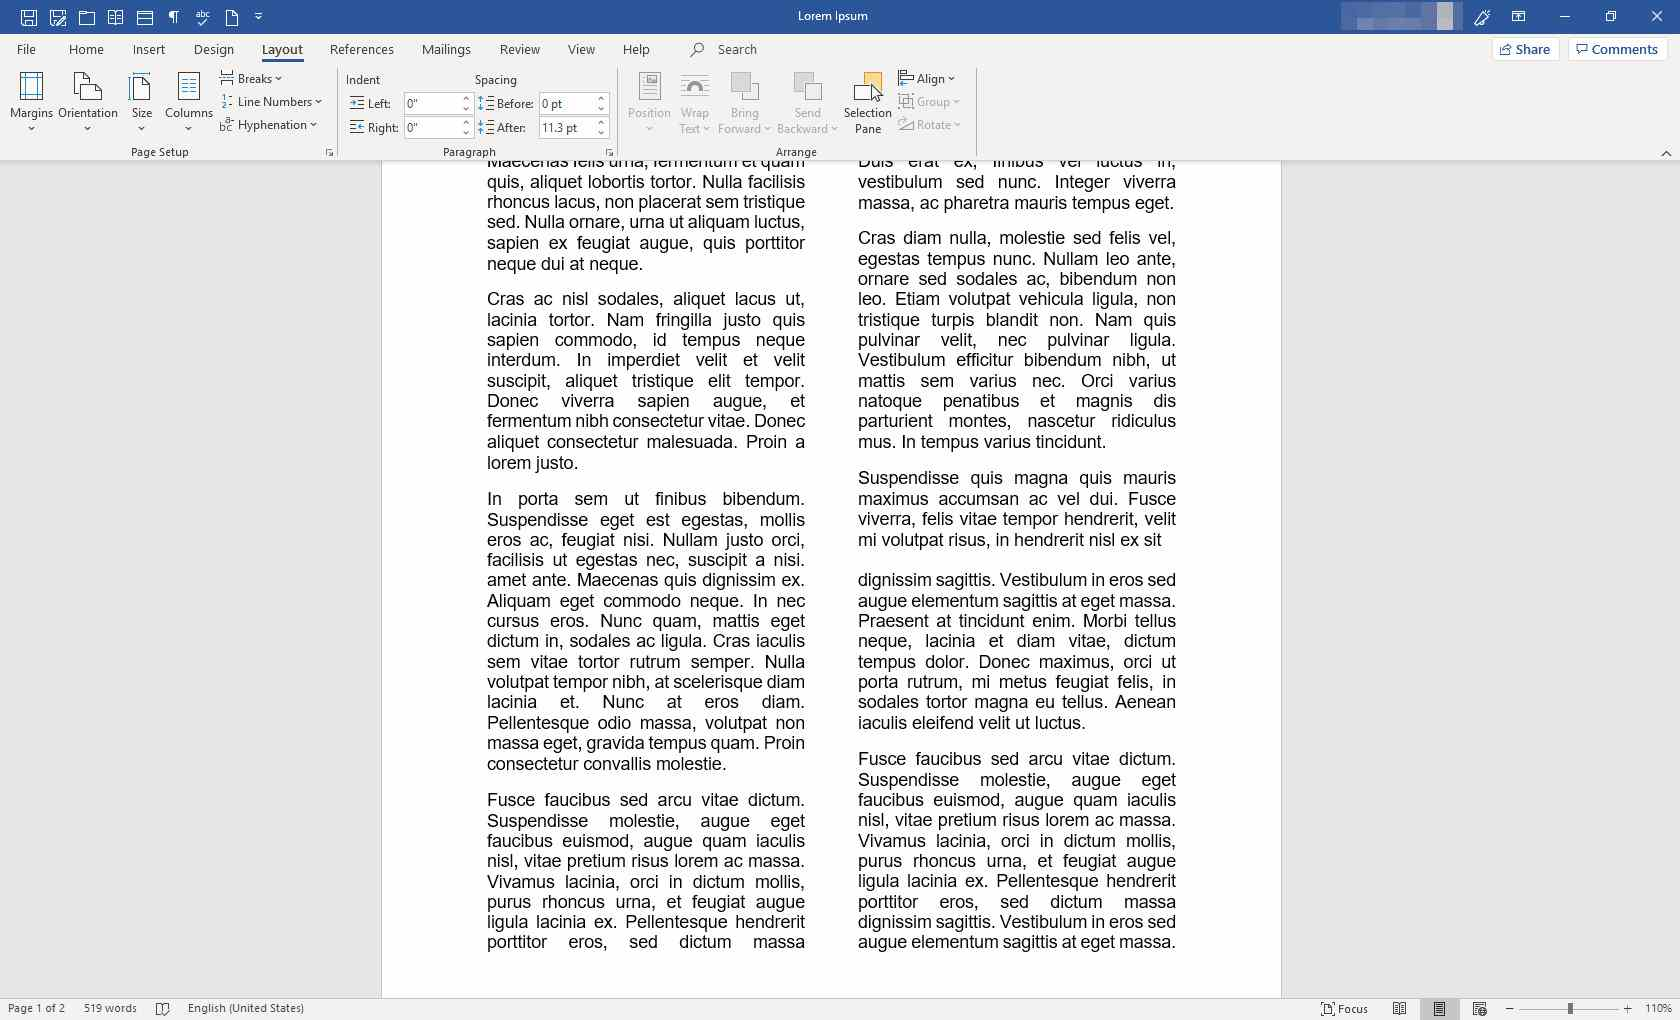 MS Word with evenly distributed columns